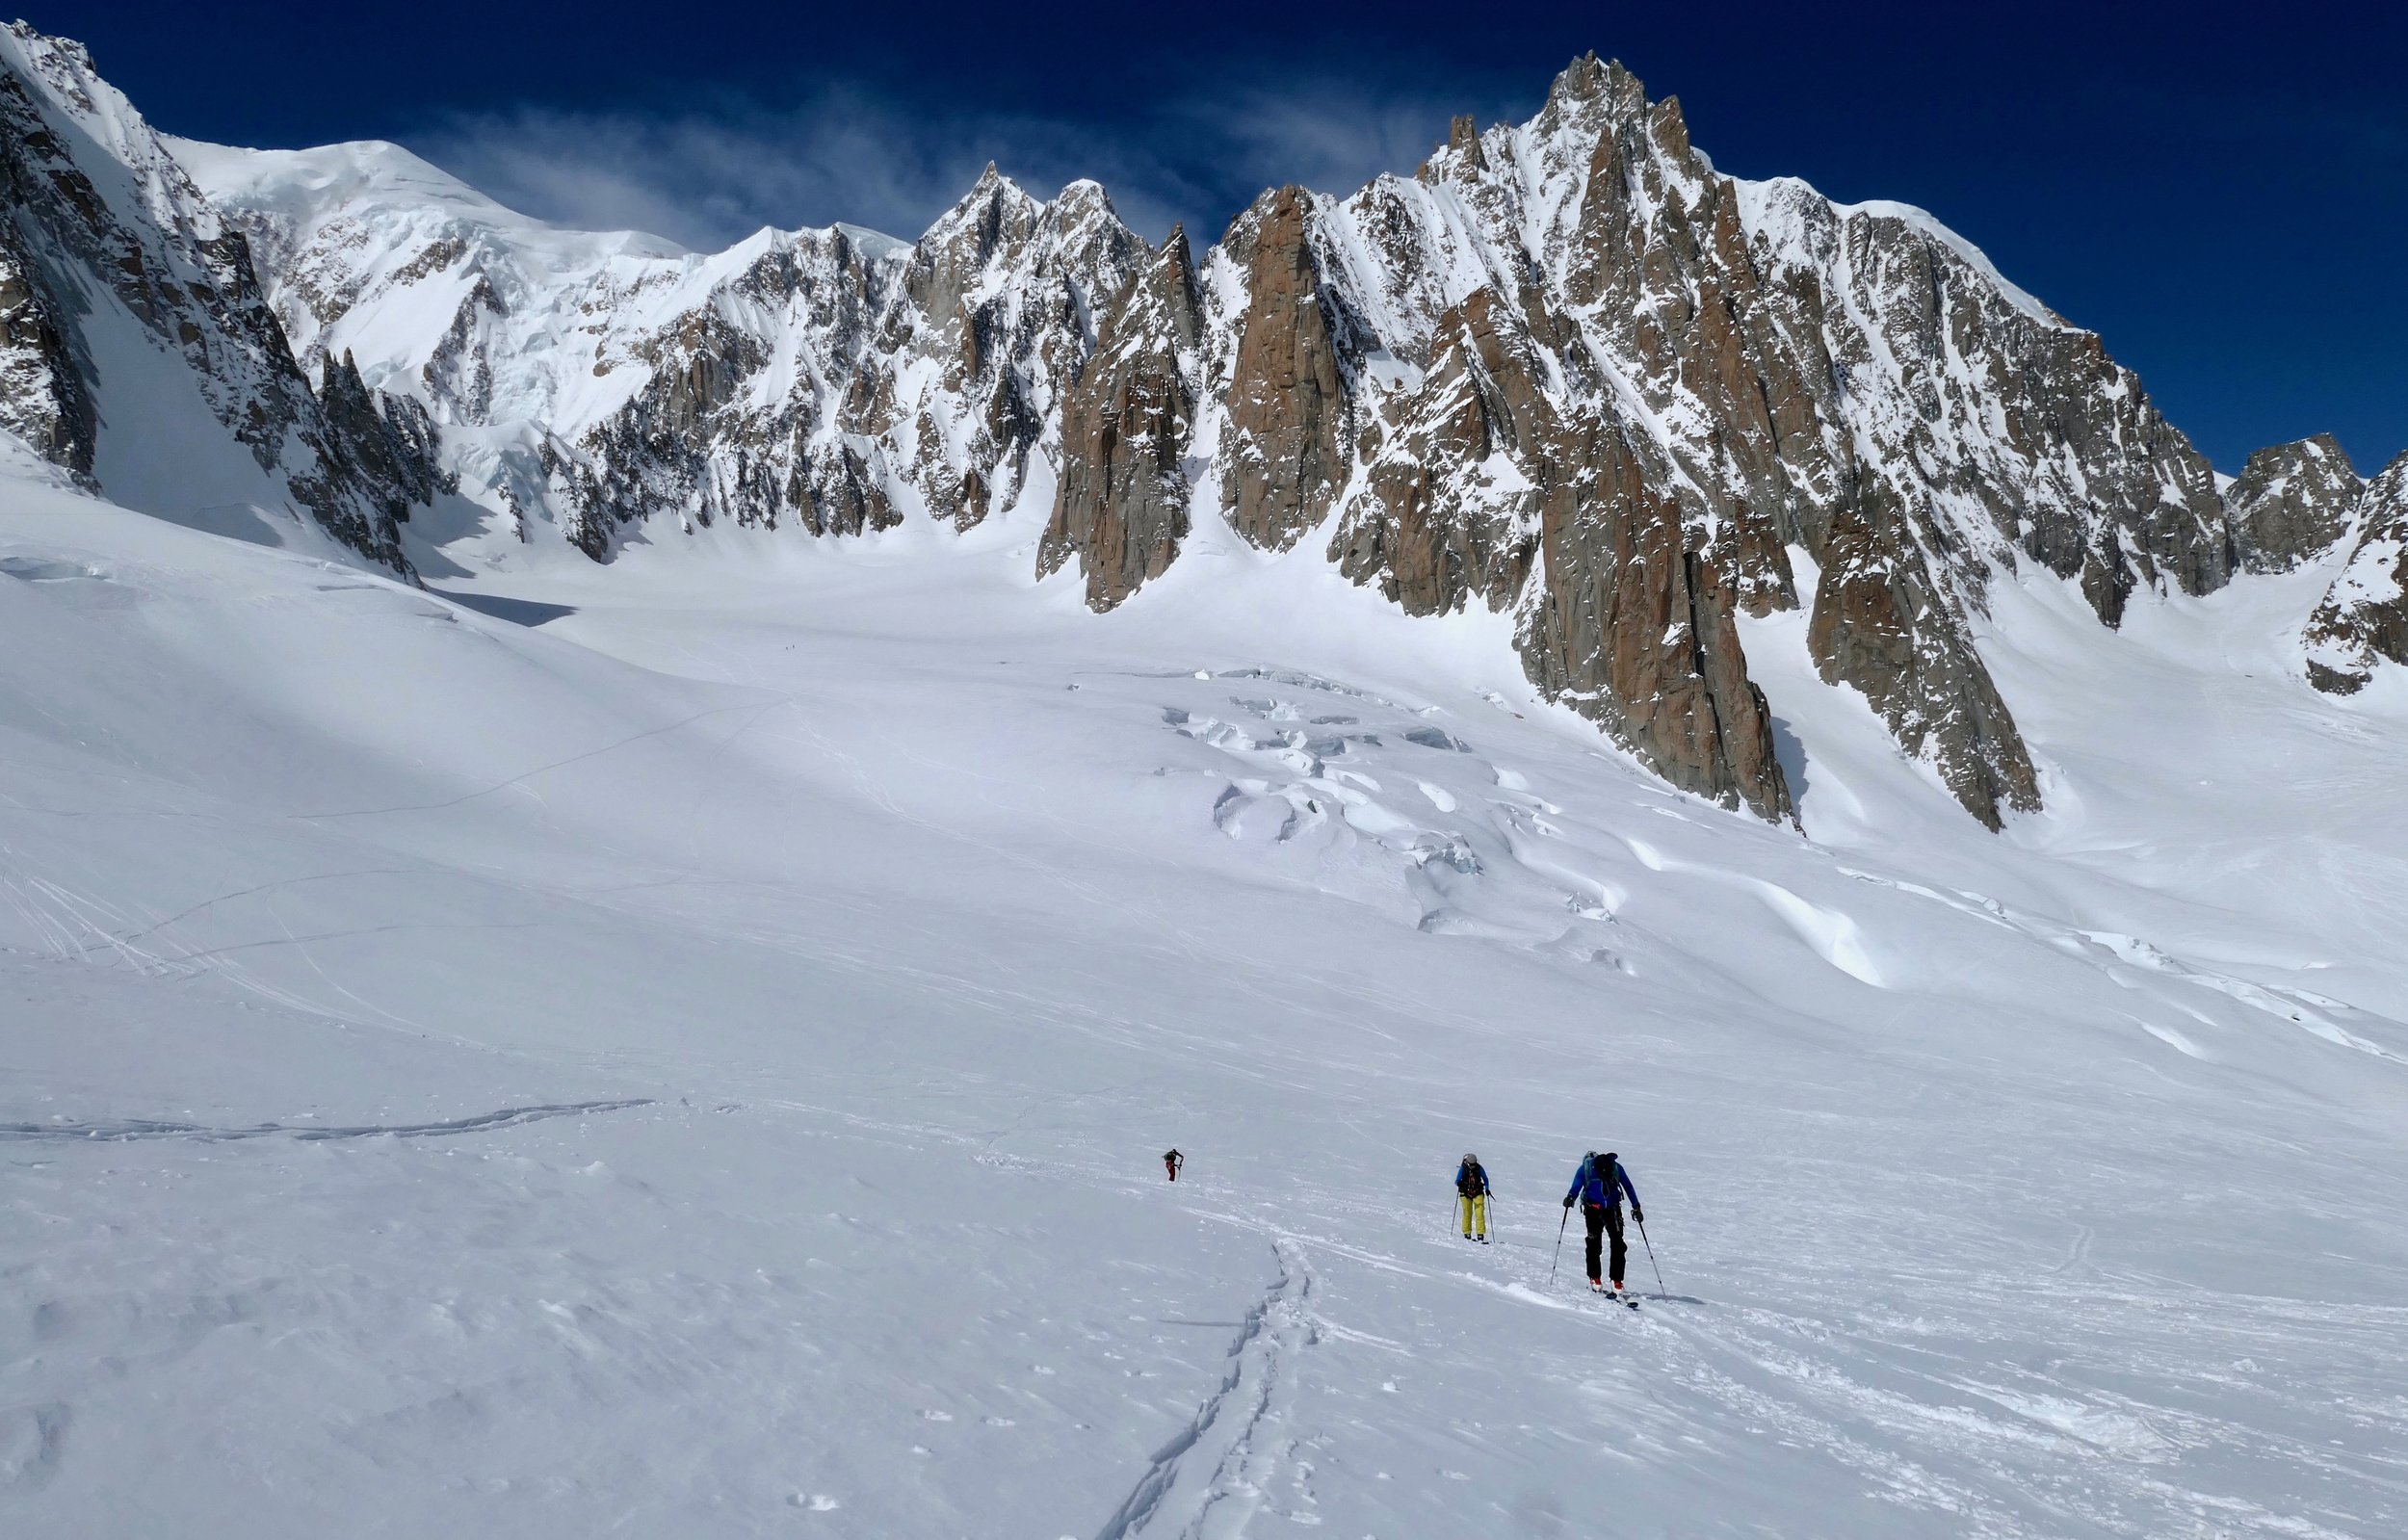 Touring on the Italian side of the Vallee Blanche, with Mont Blanc de Tacul behind